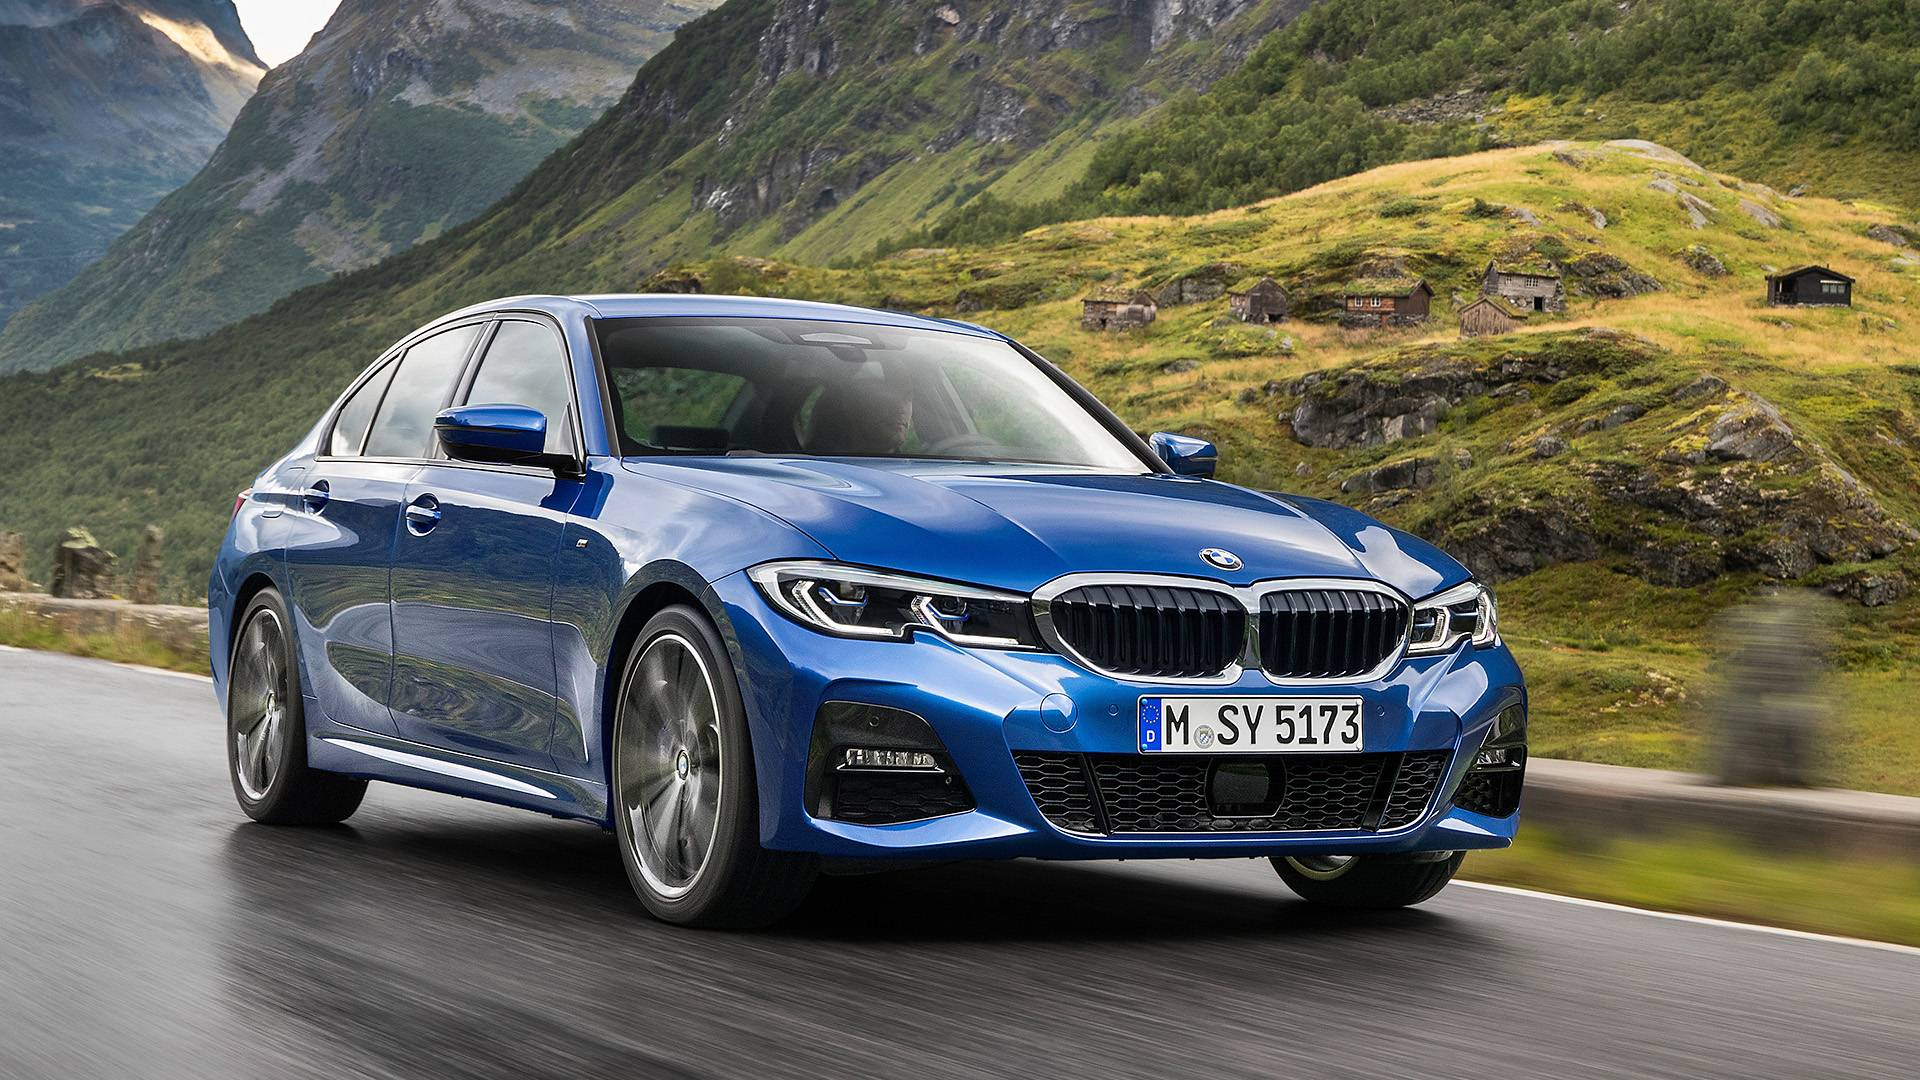 The All New 2019 Bmw 3 Series Almost Looking For The Spindle Grille